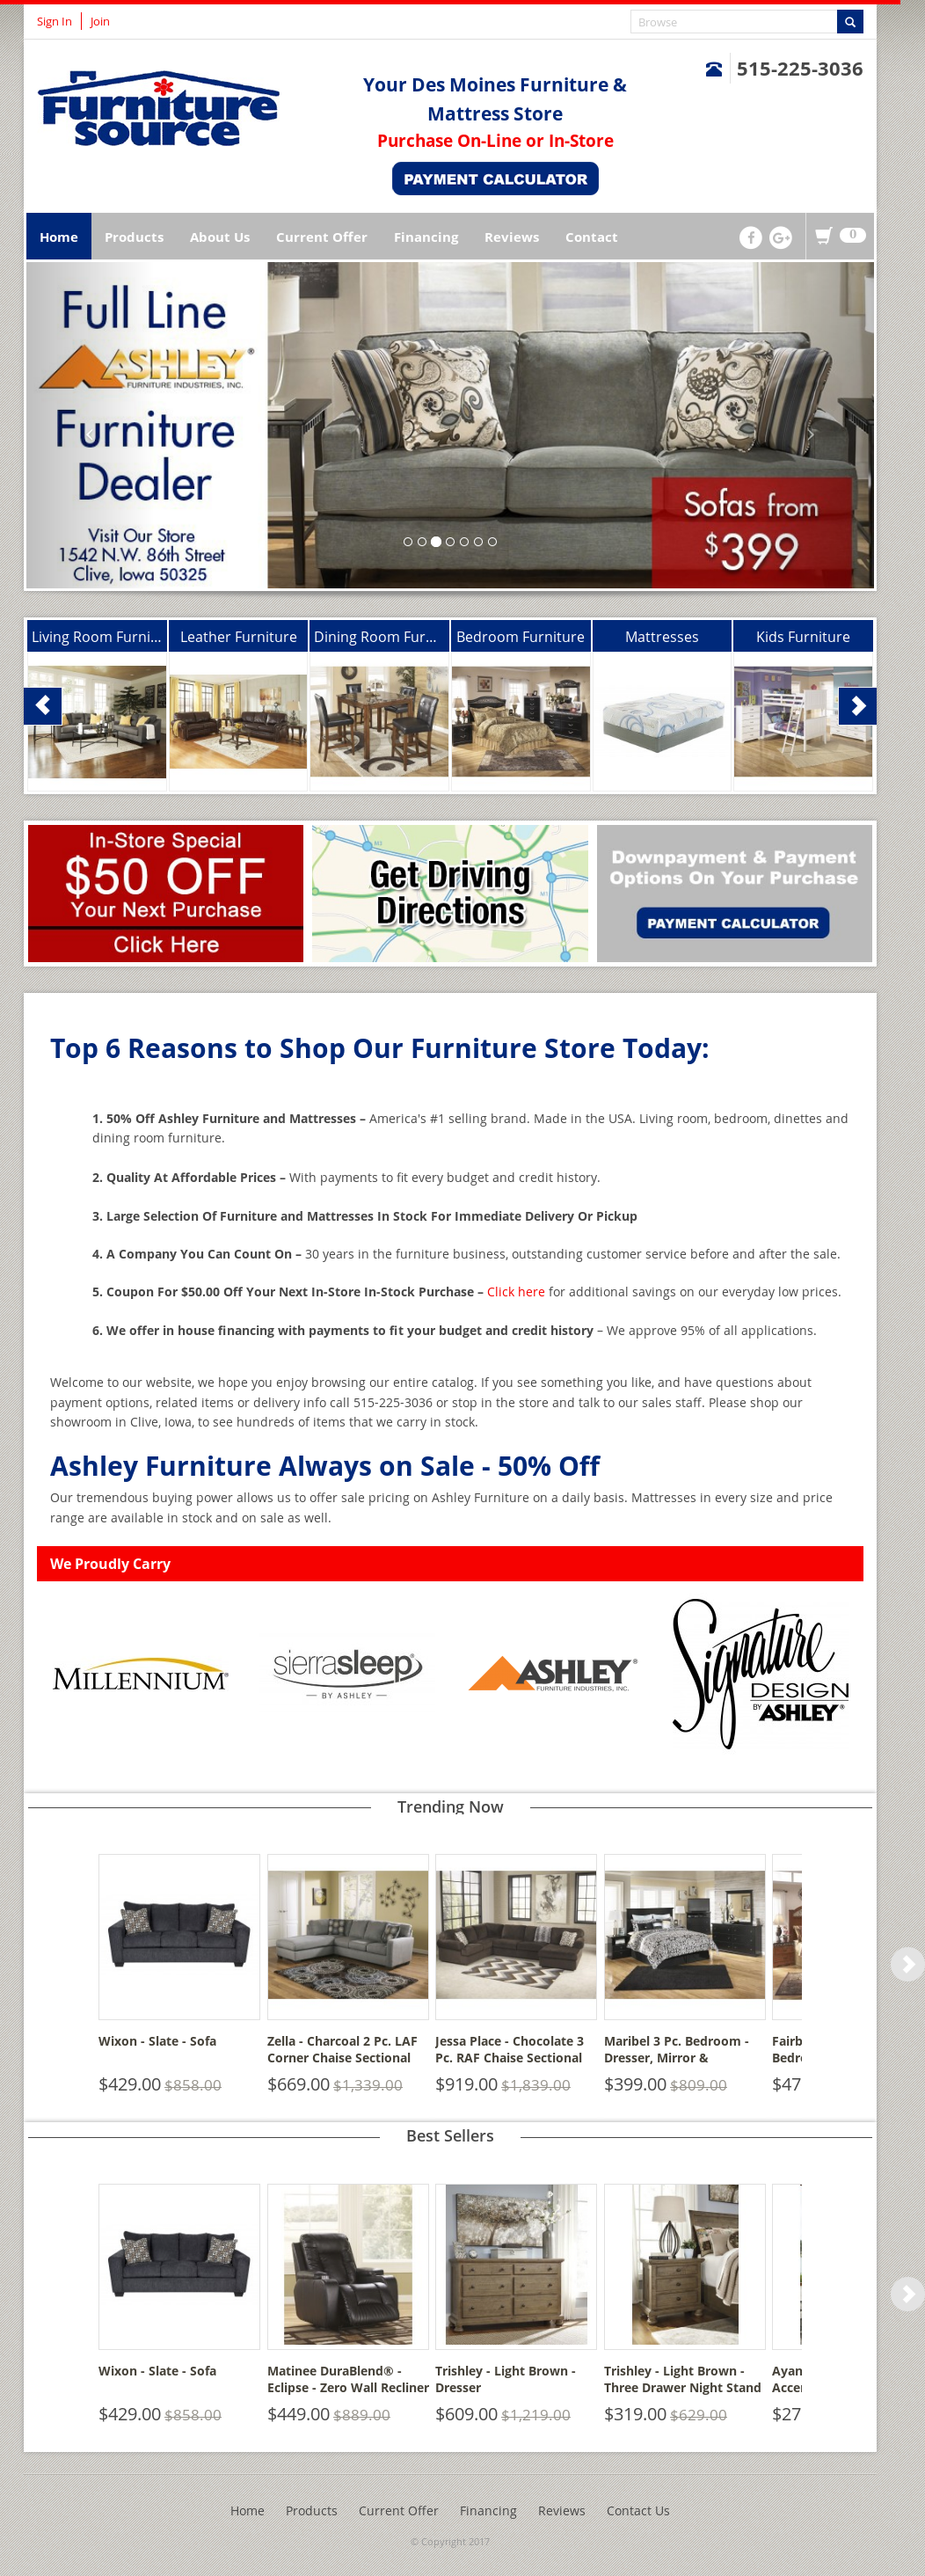 Furniture Source Website History